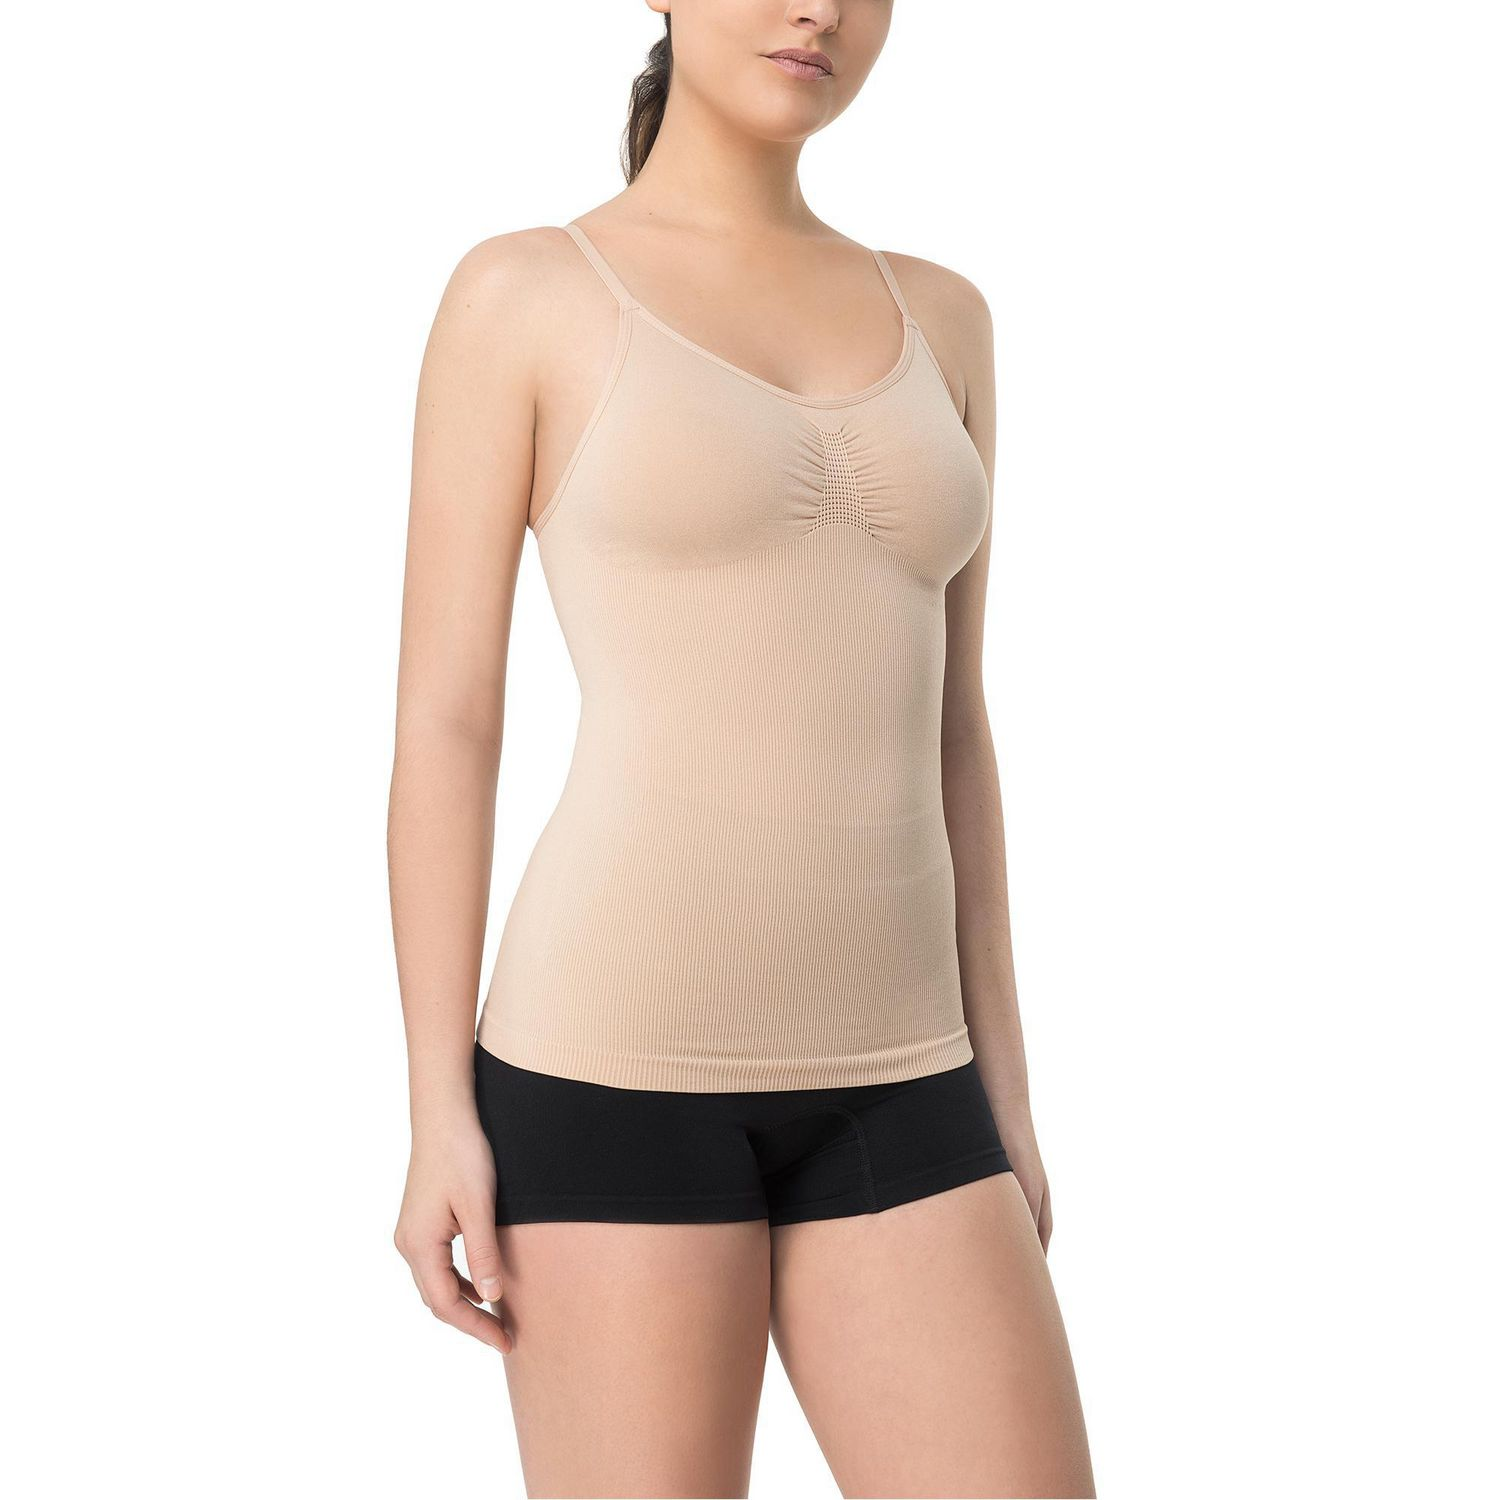 75026ec087d17 George Girls  Seamless Tummy Control Camisole - image 1 of 1 zoomed image